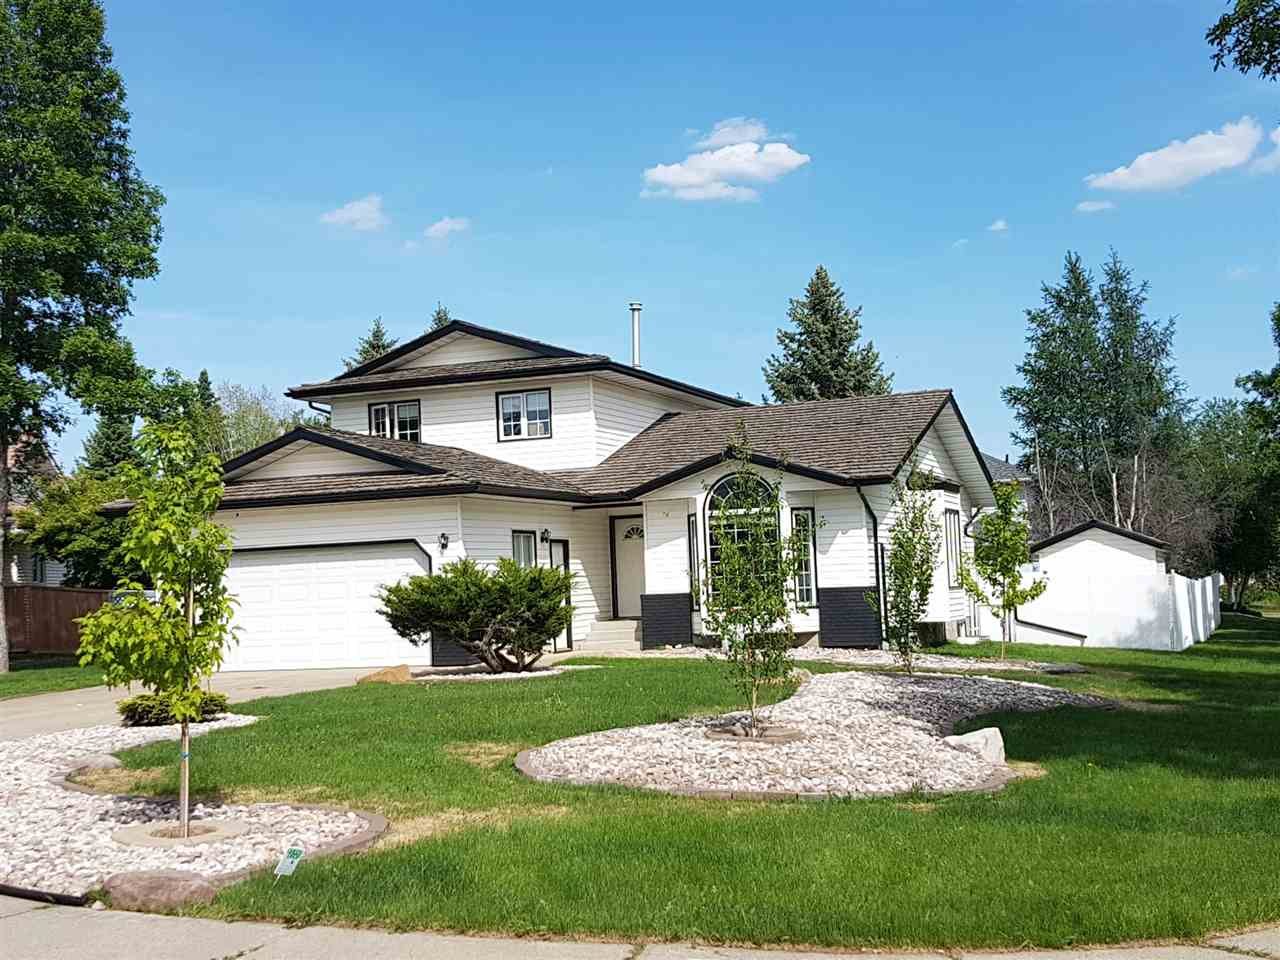 Main Photo: 1 Ironstone Place: St. Albert House for sale : MLS(r) # E4068214